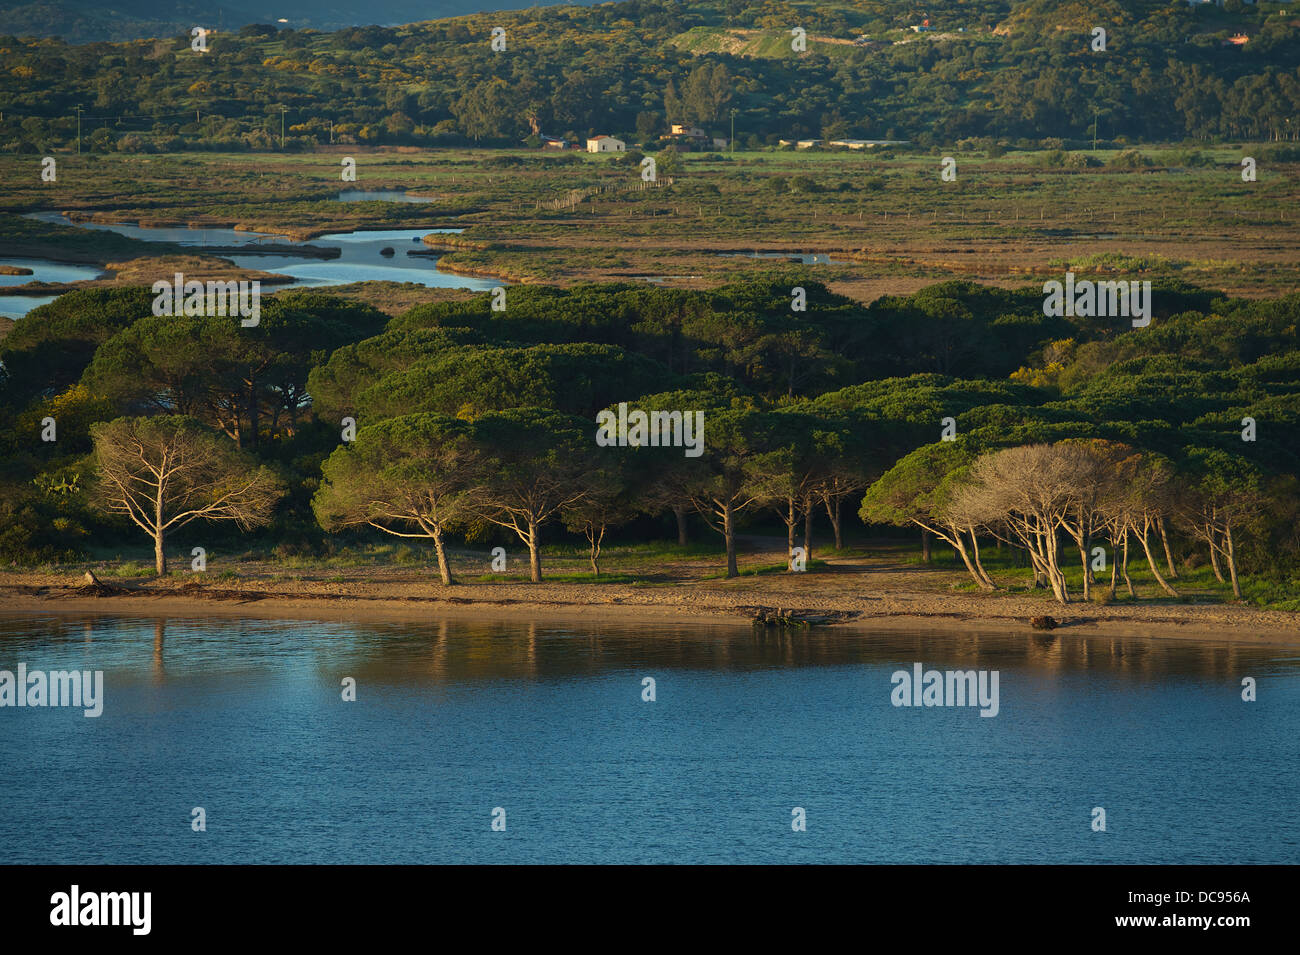 Approaching the prot of Olbia with the ferry boat. View of beach with trees - Stock Image